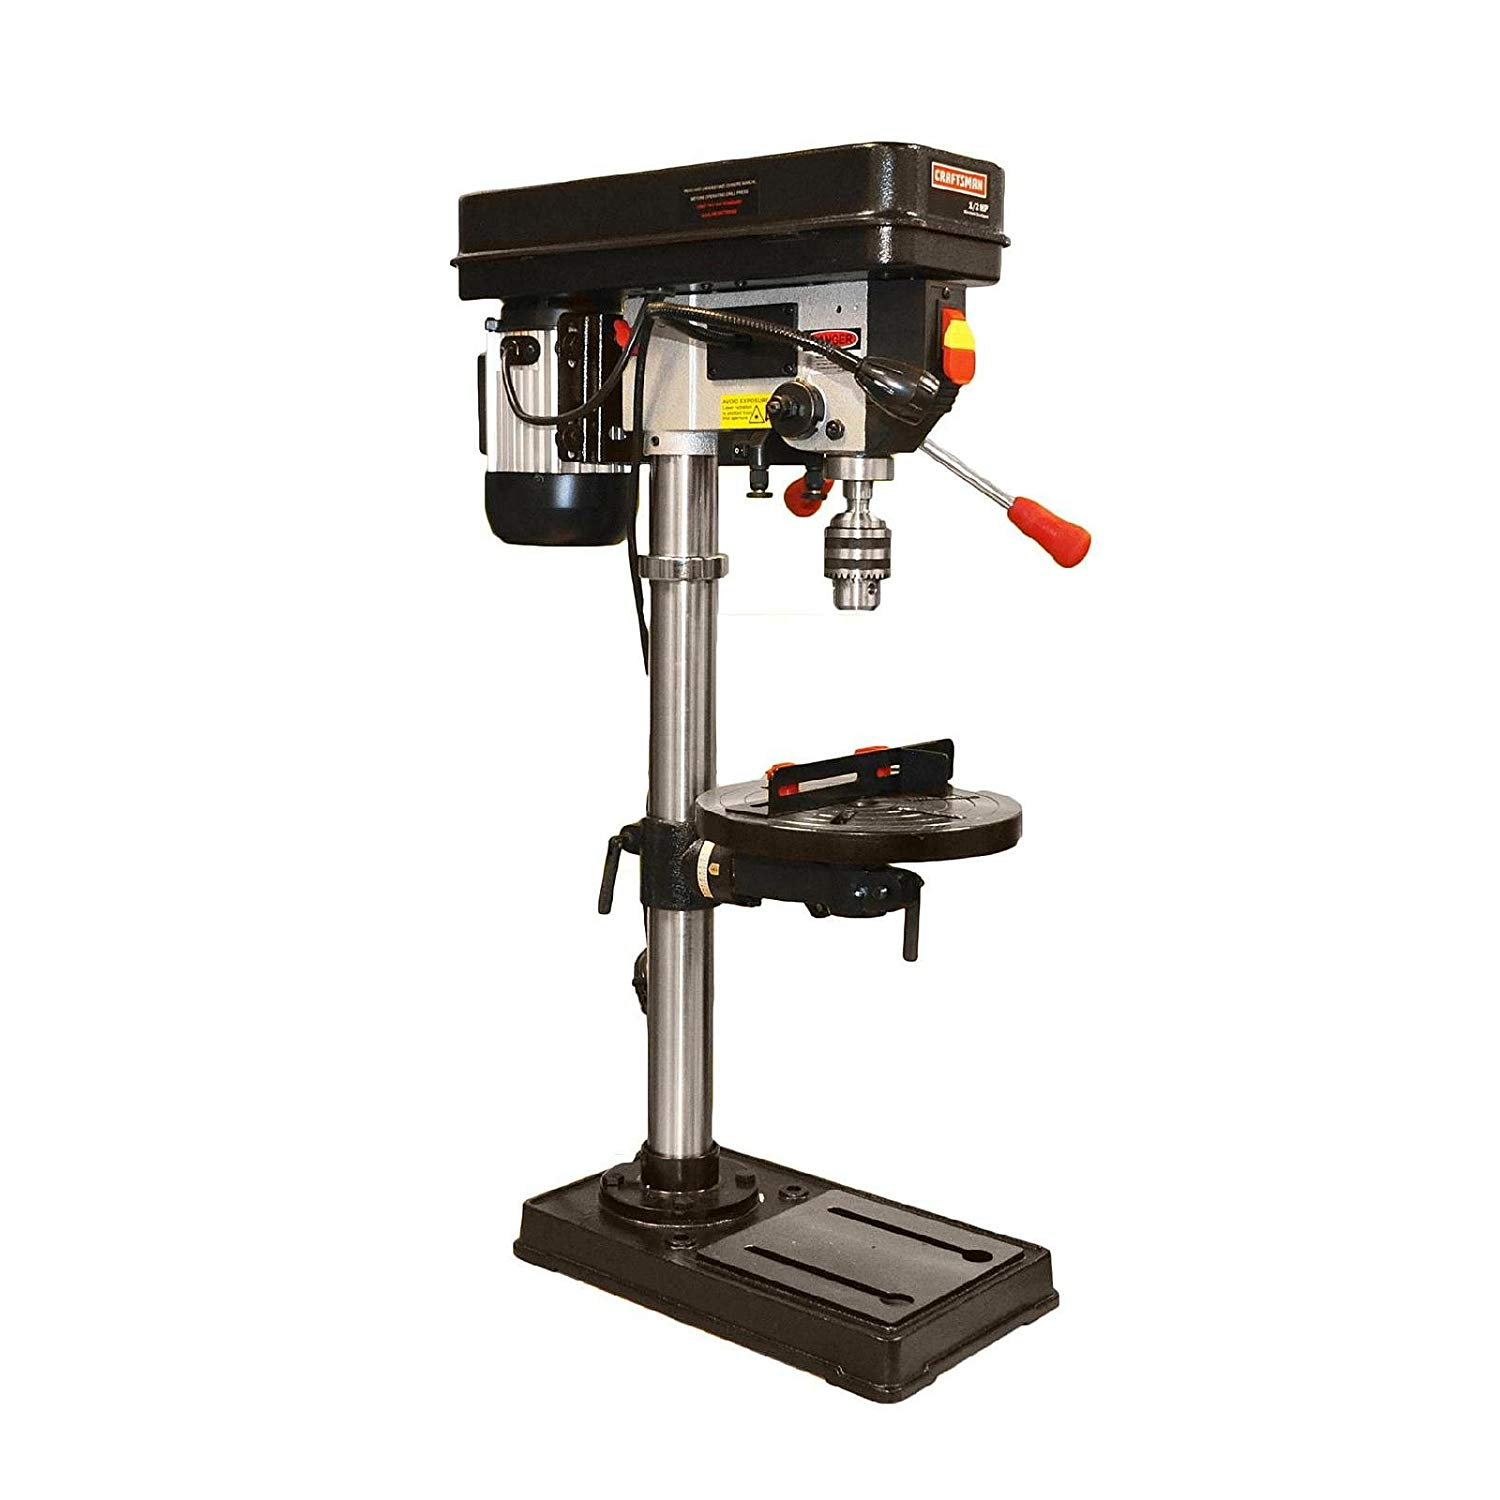 Craftsman 12 inch Drill Press